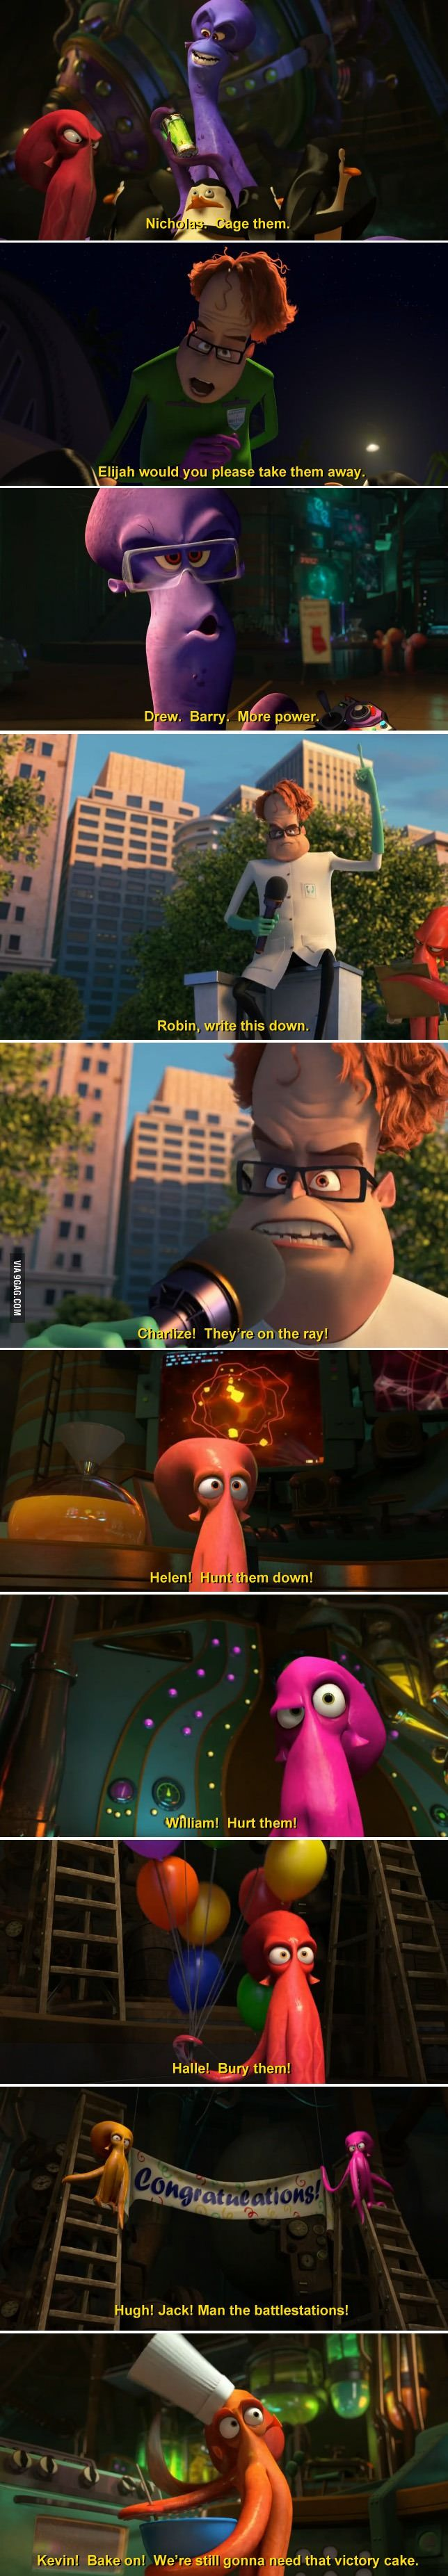 """As a grown-up and movie fan, I really appreciated this running gag in """"Penguins of Madagascar."""""""